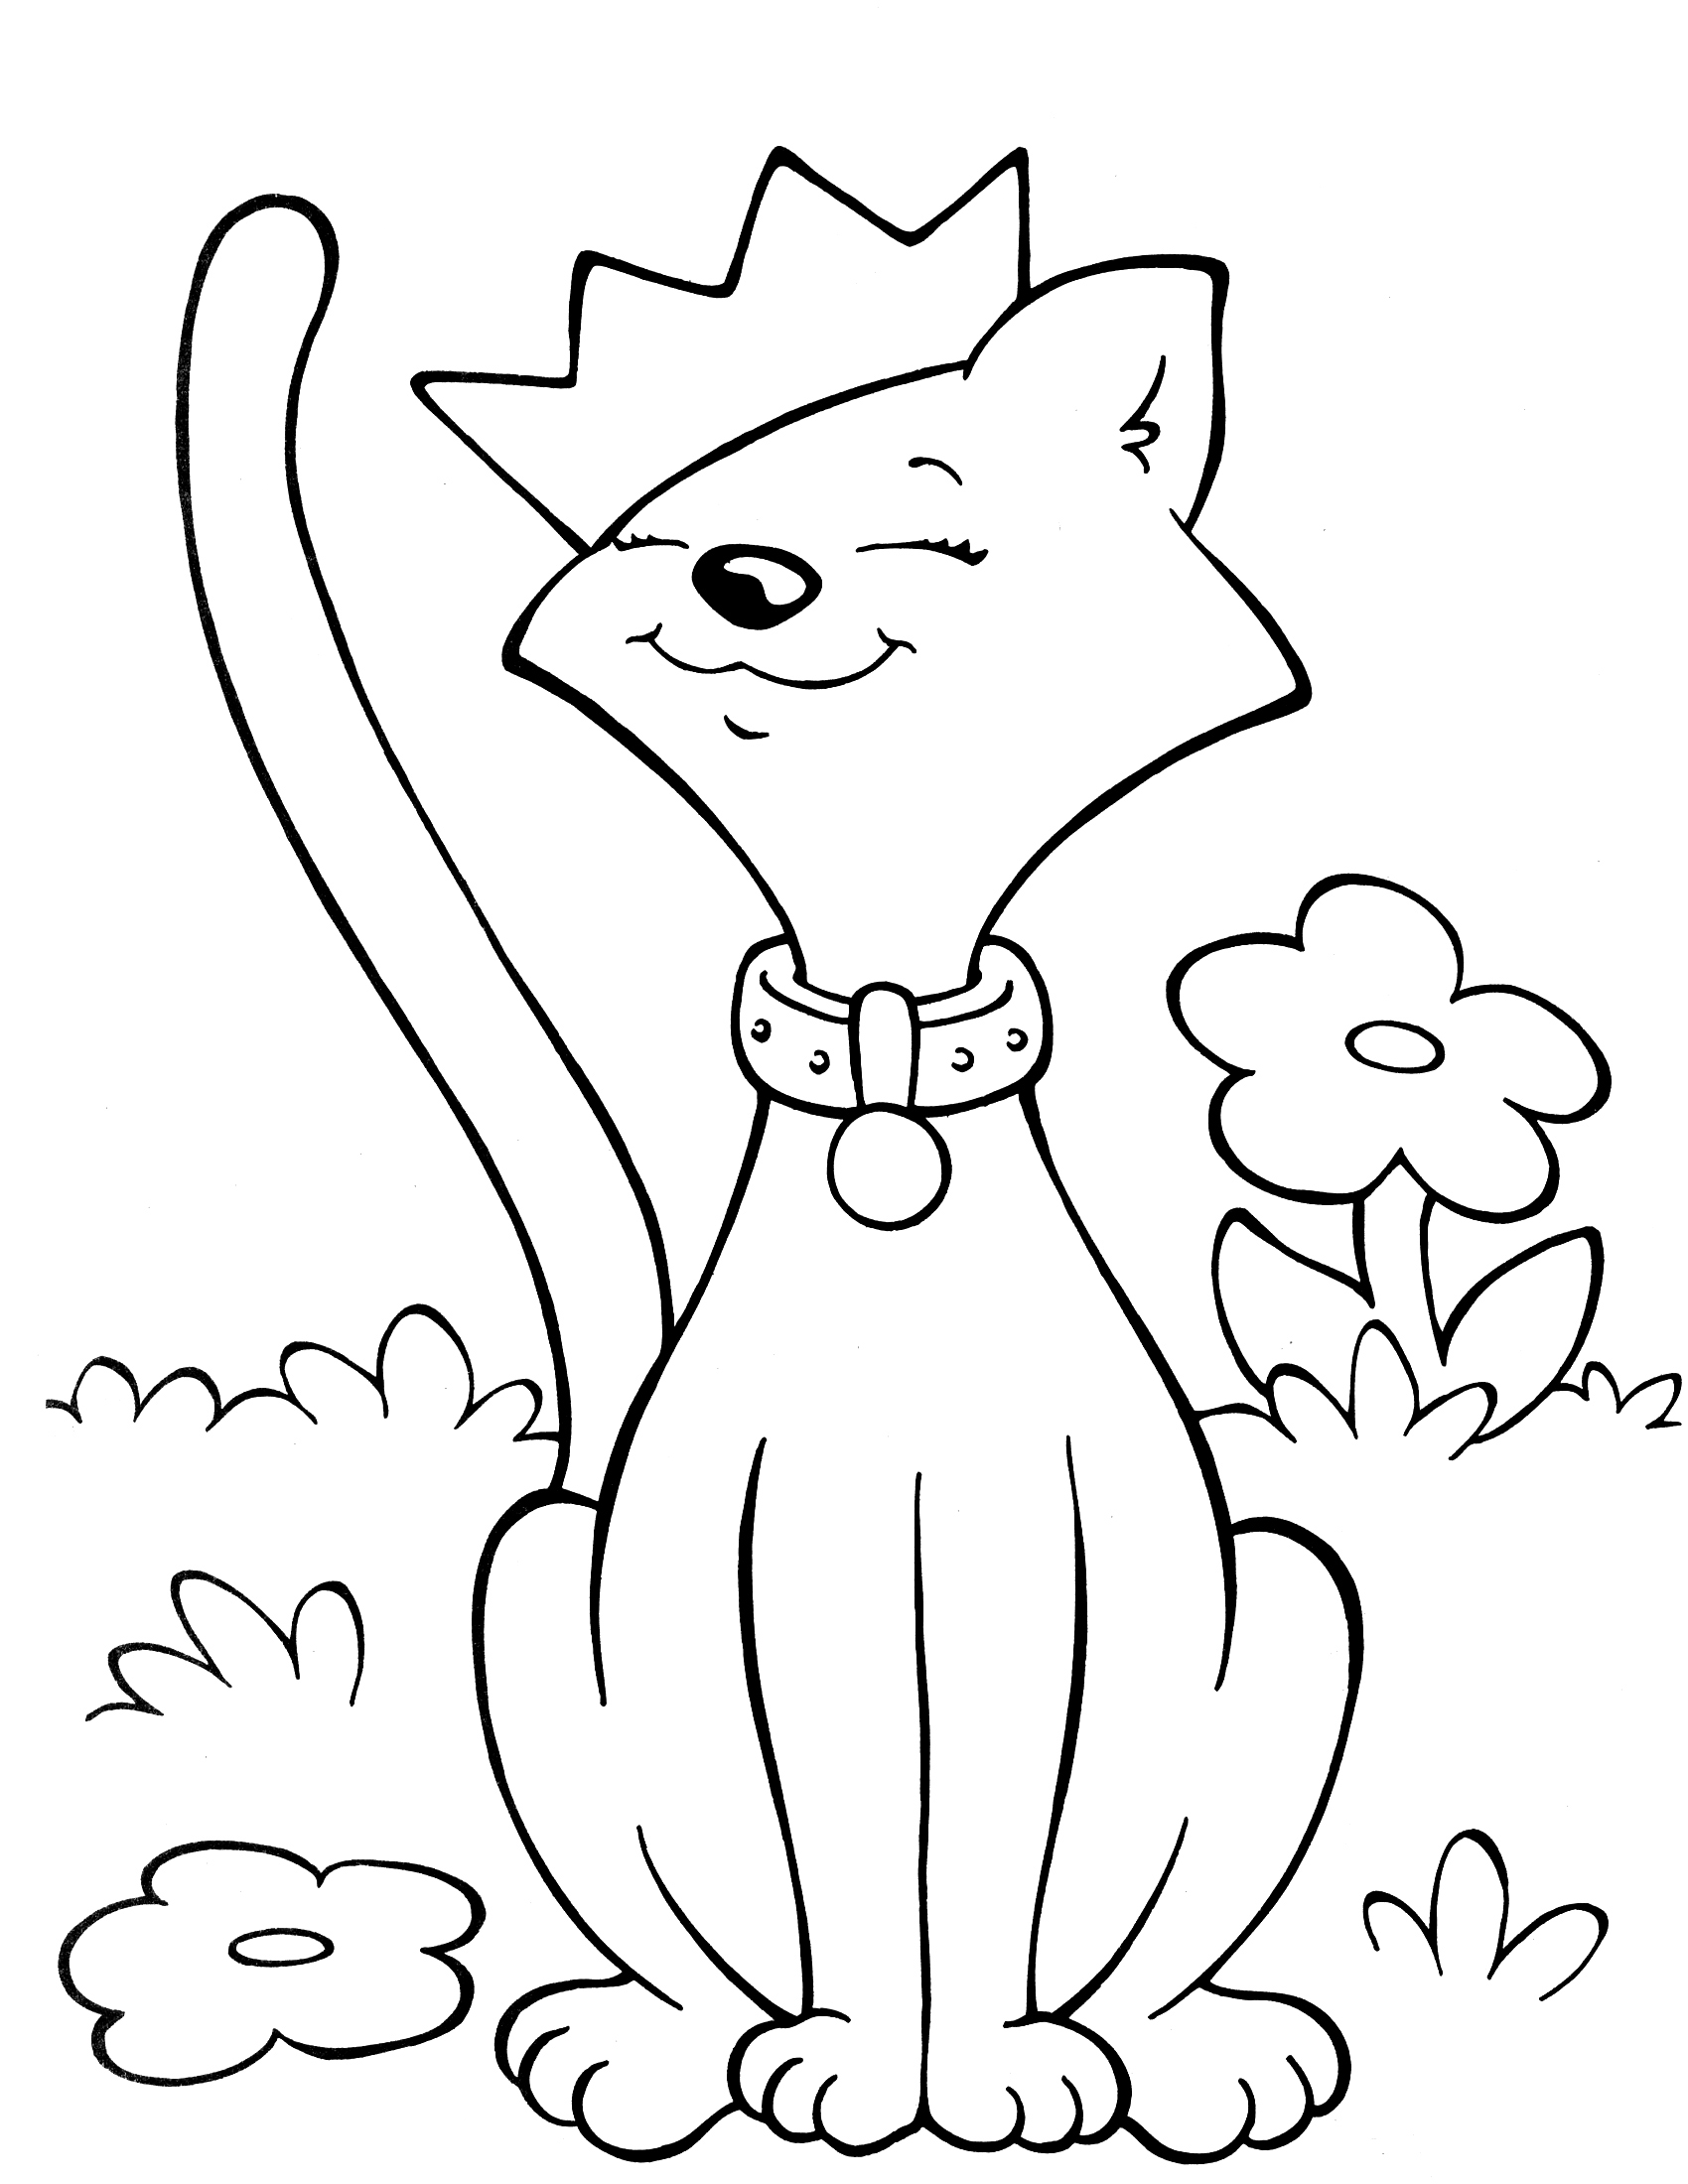 coloring pages from crayola - photo#4